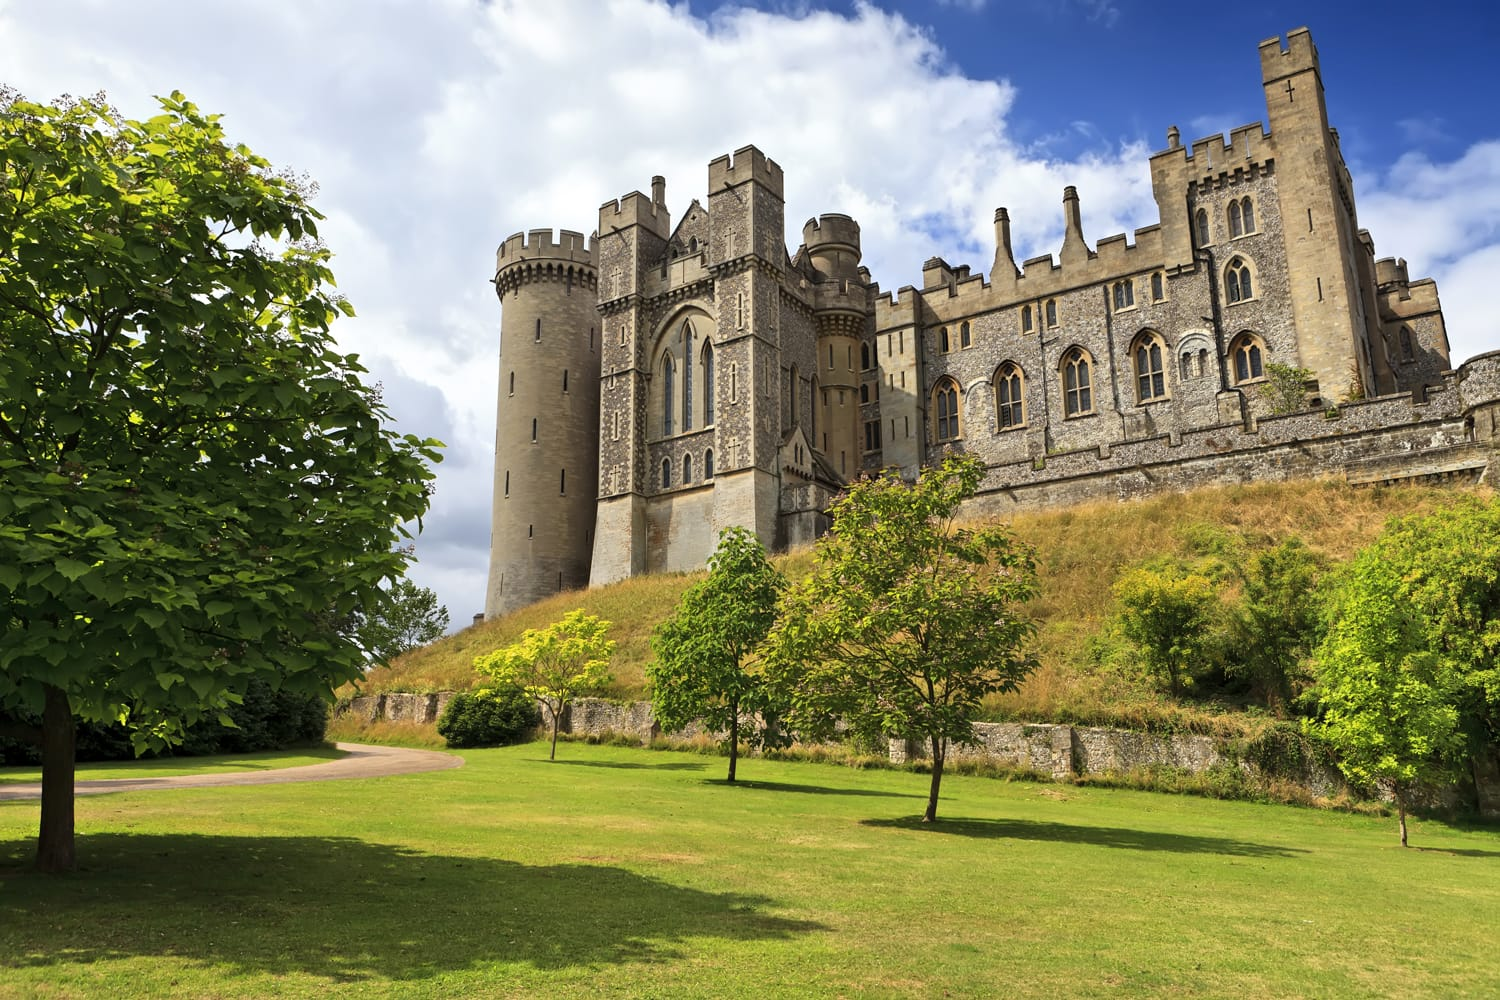 Arundel Castle, Arundel, West Sussex, England, United Kingdom (UK)